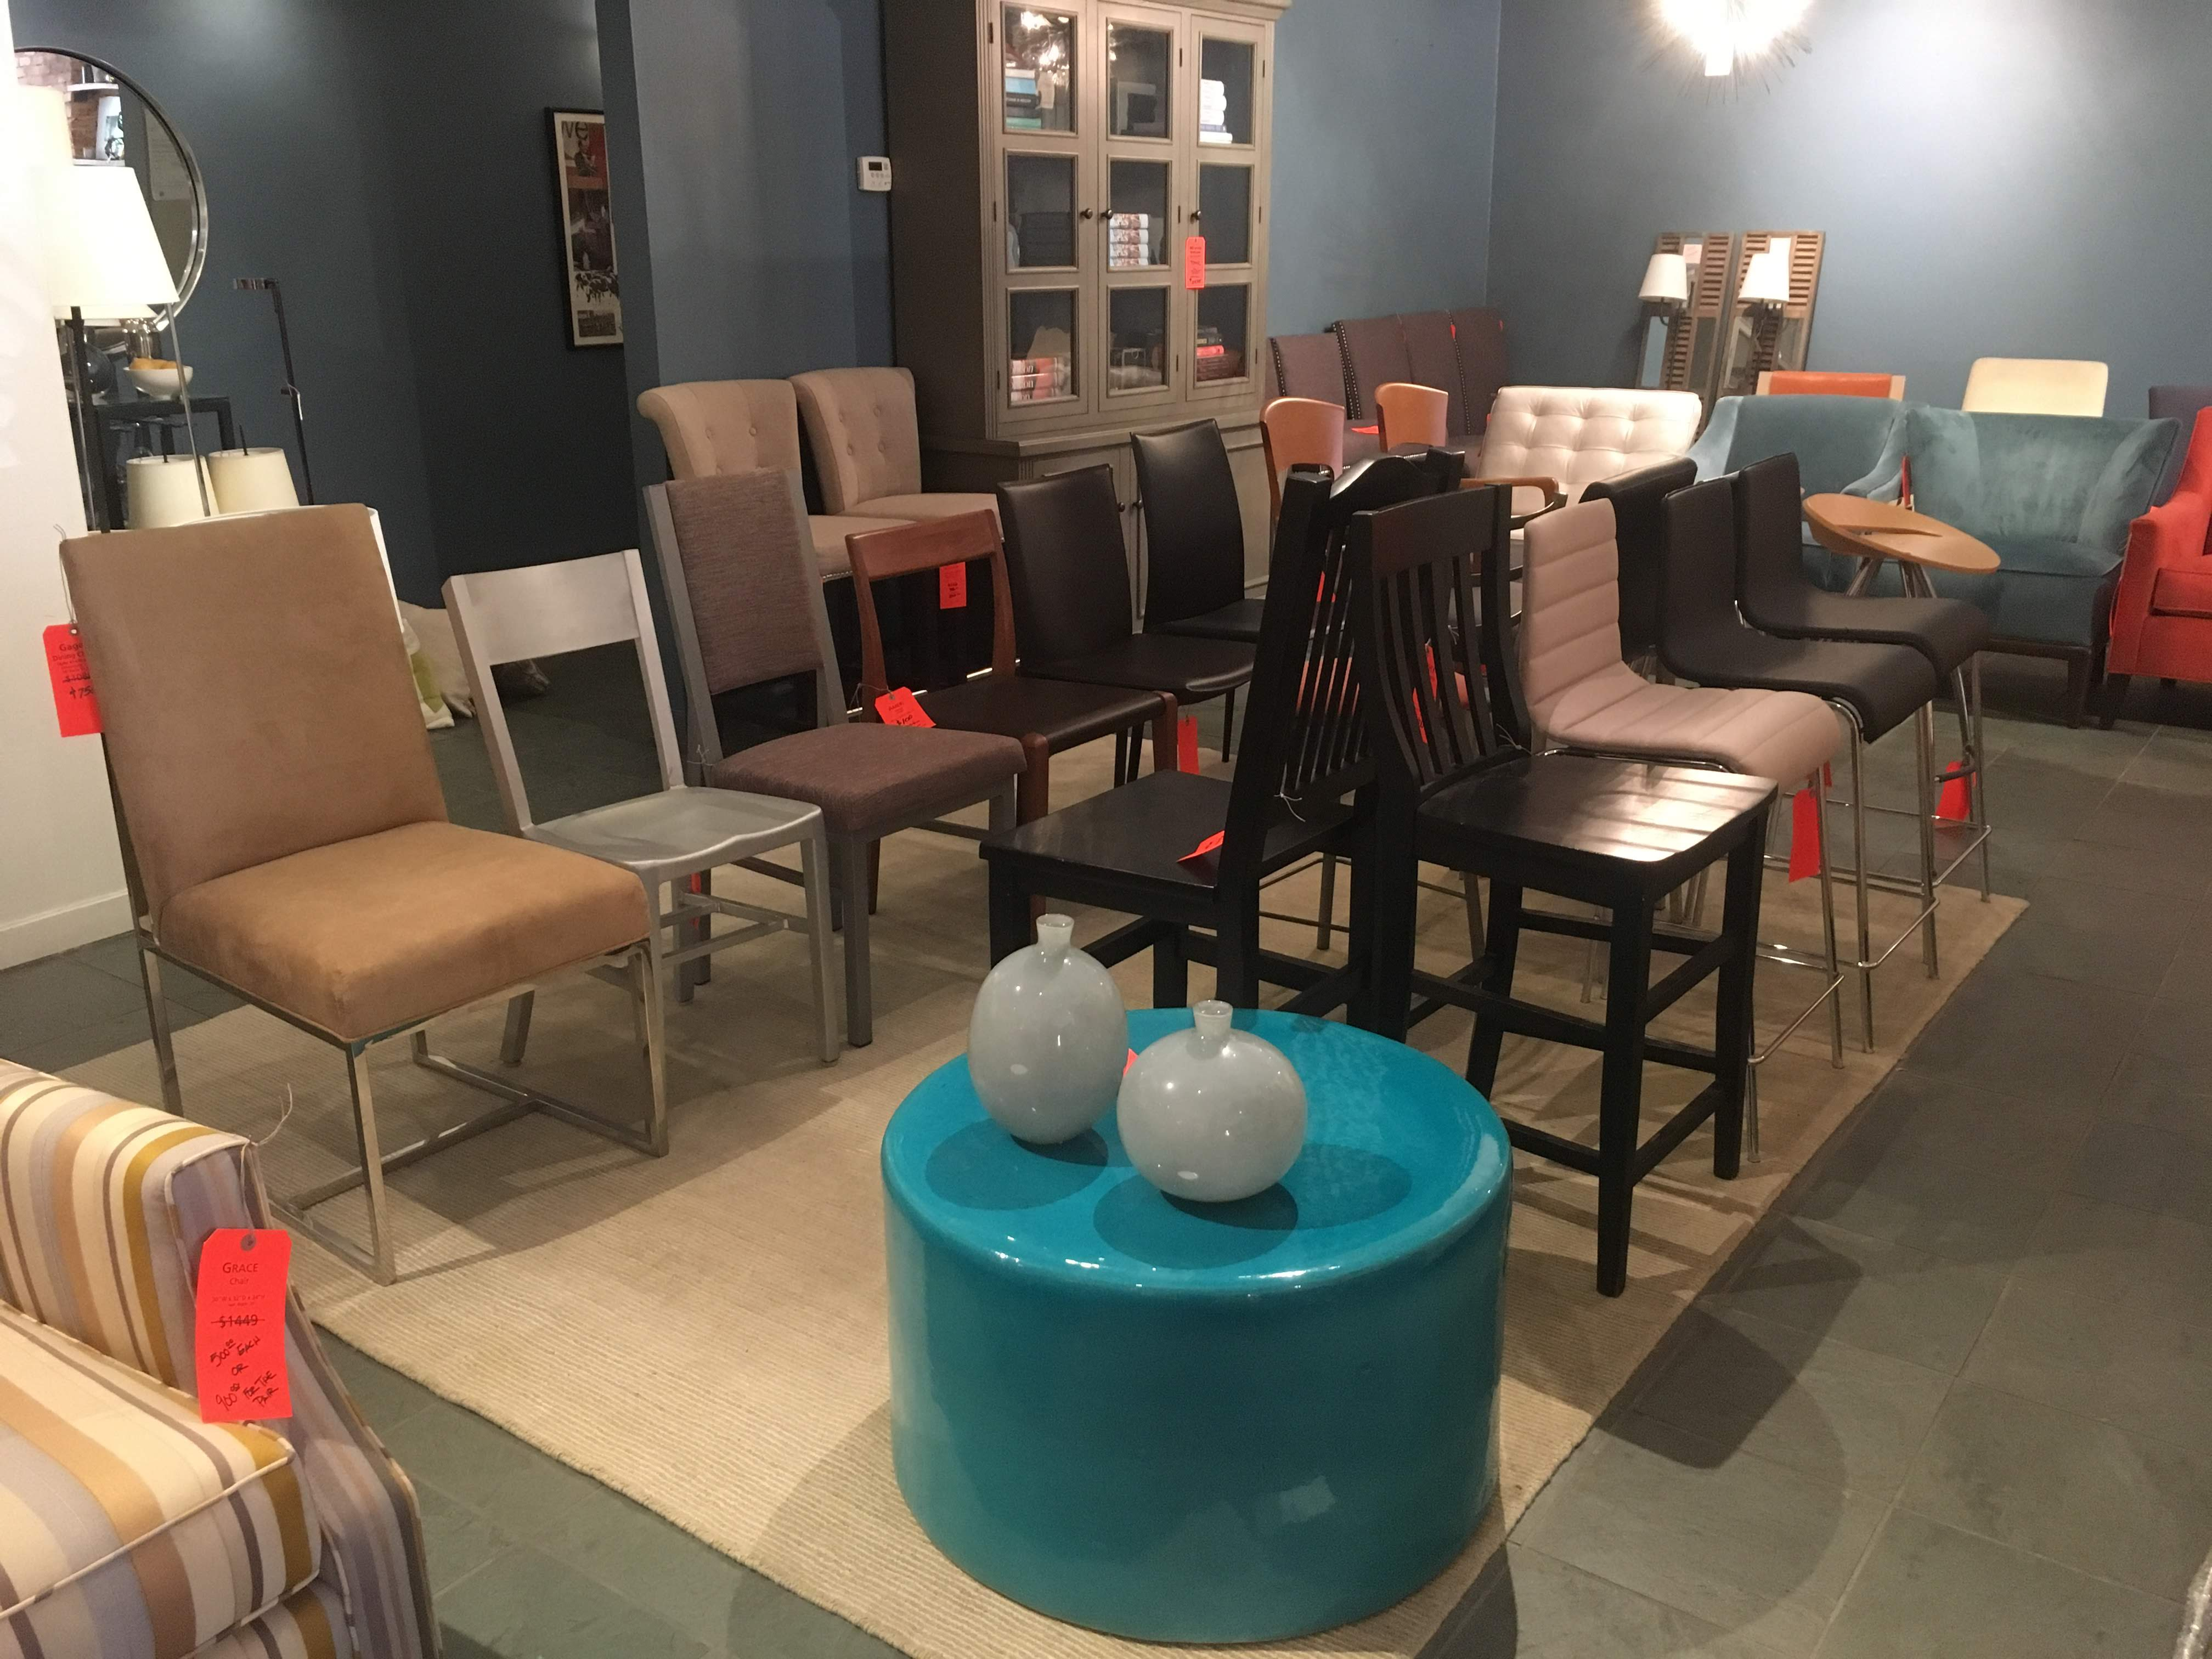 Clearance Furniture Sale Ann Arbor Three Chairs Co Chairs Sofas Living Room Home Decor Beds Tables Dining Room 1788 Three Chairs